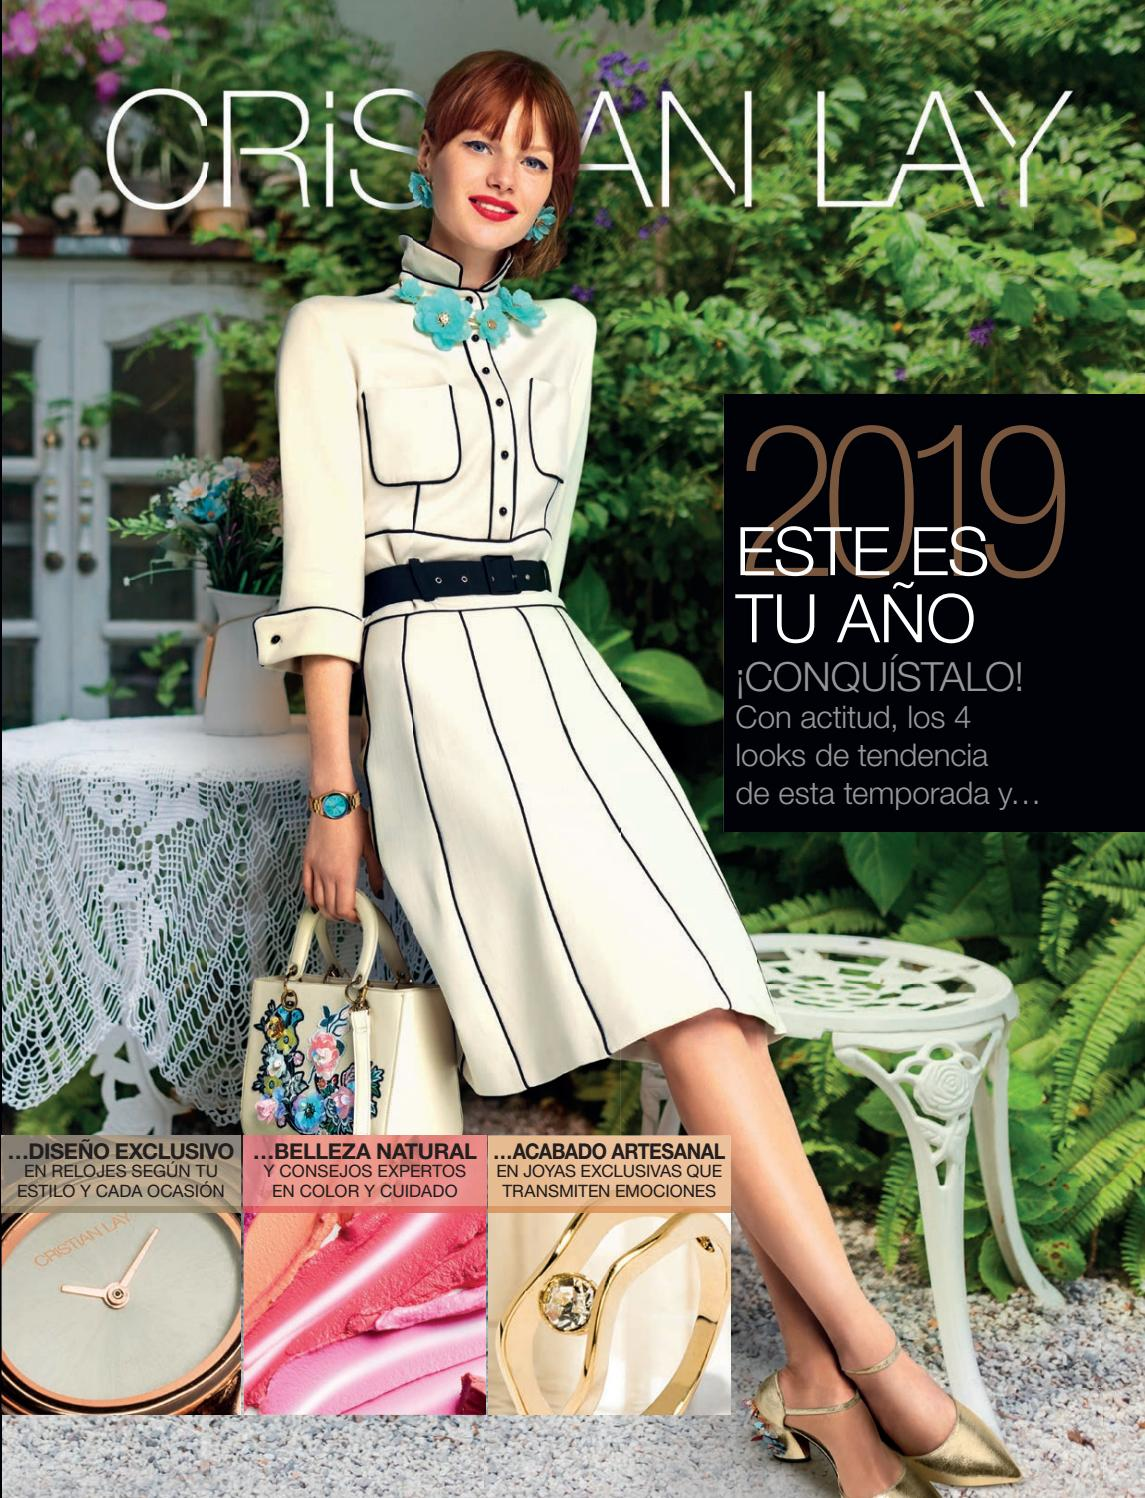 8f48a783e2fd Catálogo General 1-2019 Colombia by Cristian Lay - issuu